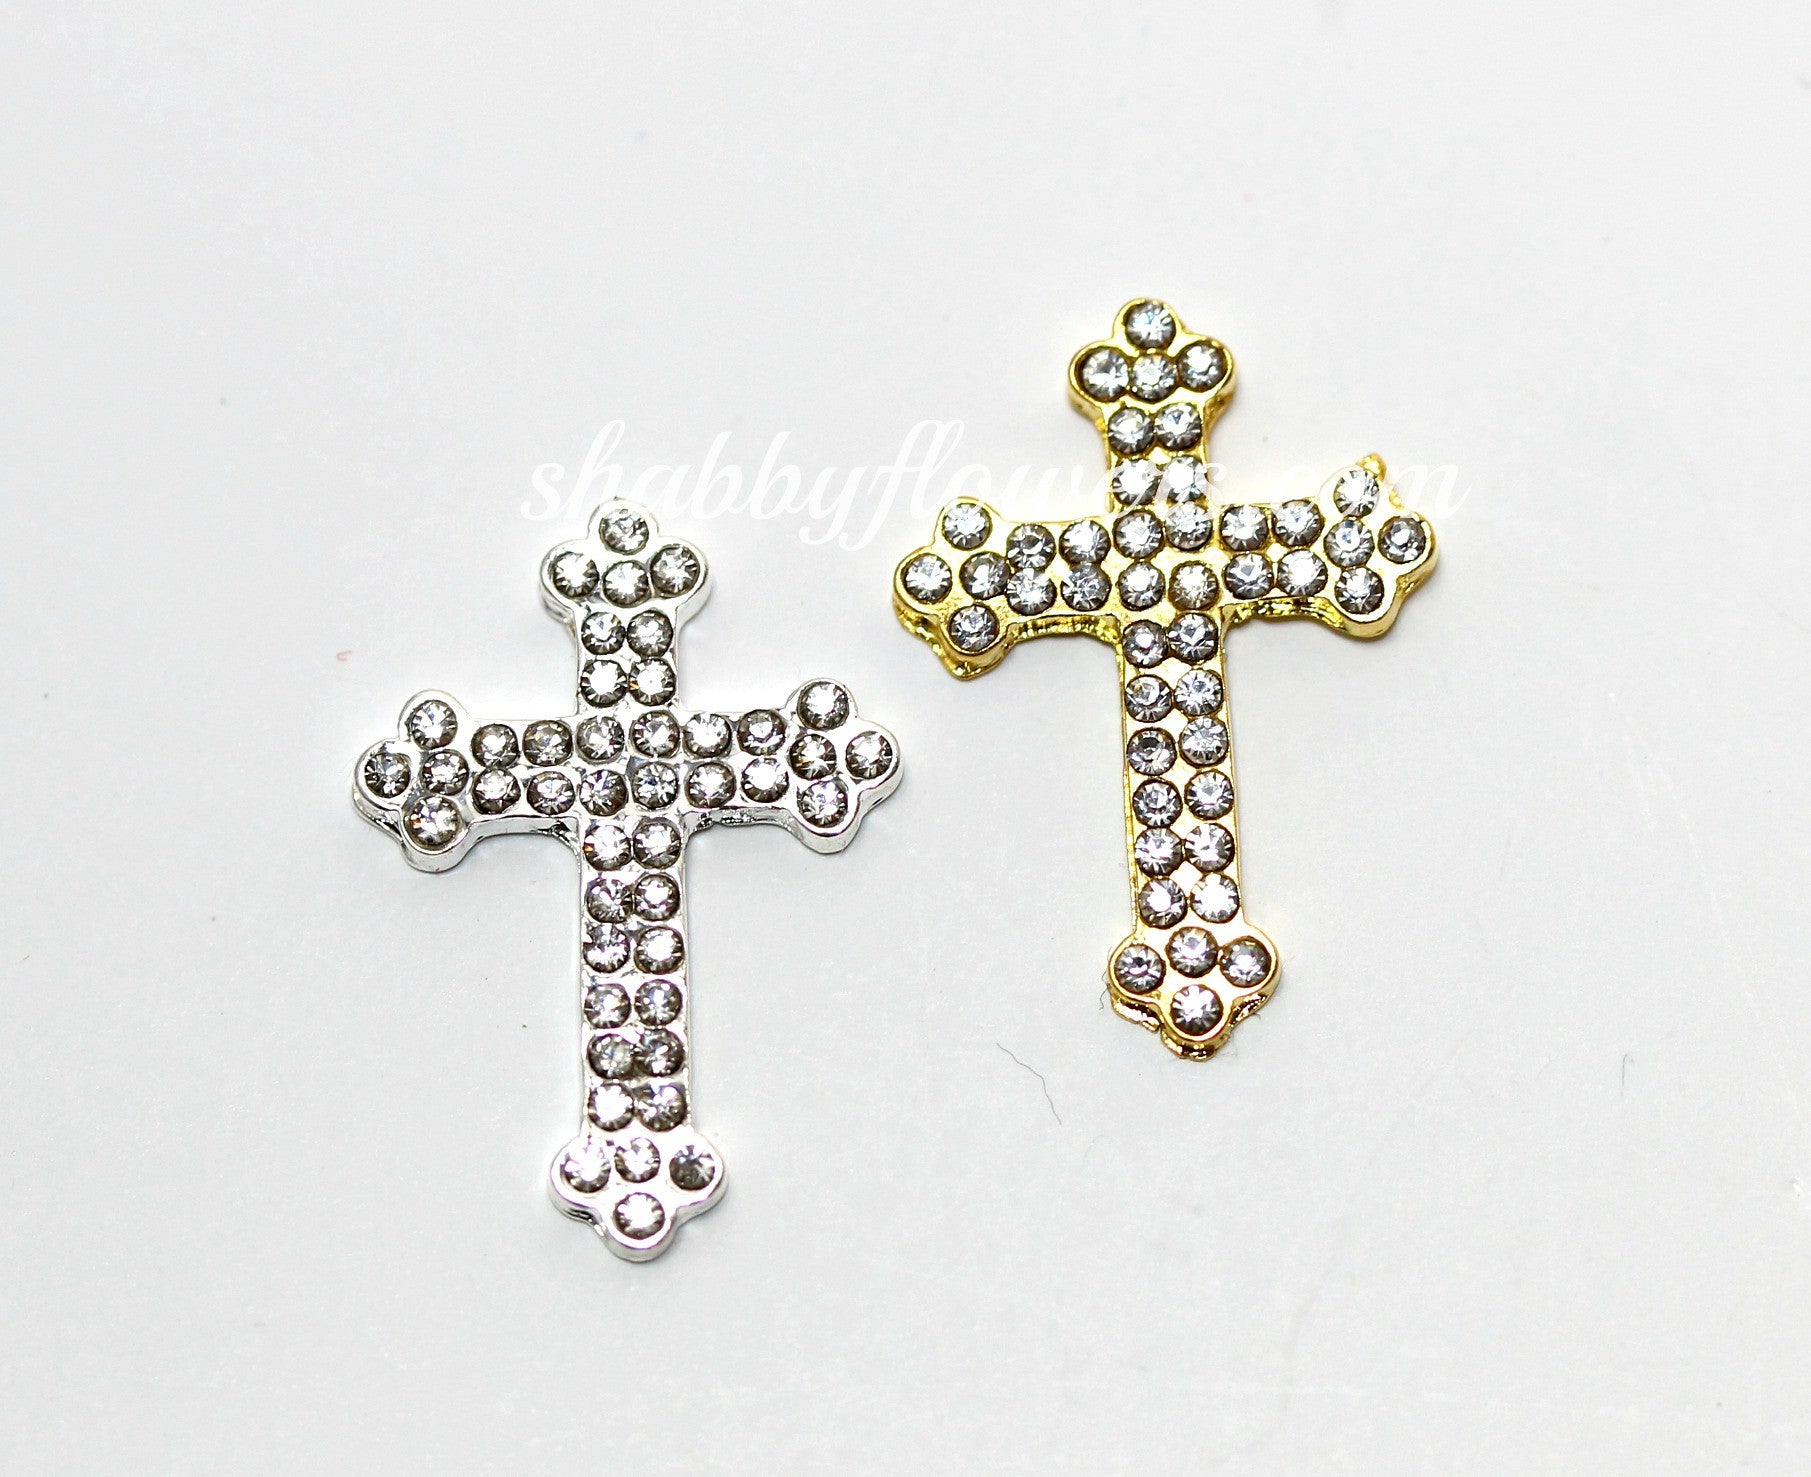 Embellishement - Rhinestone Cross Rhinestone - Choose your color - shabbyflowers.com